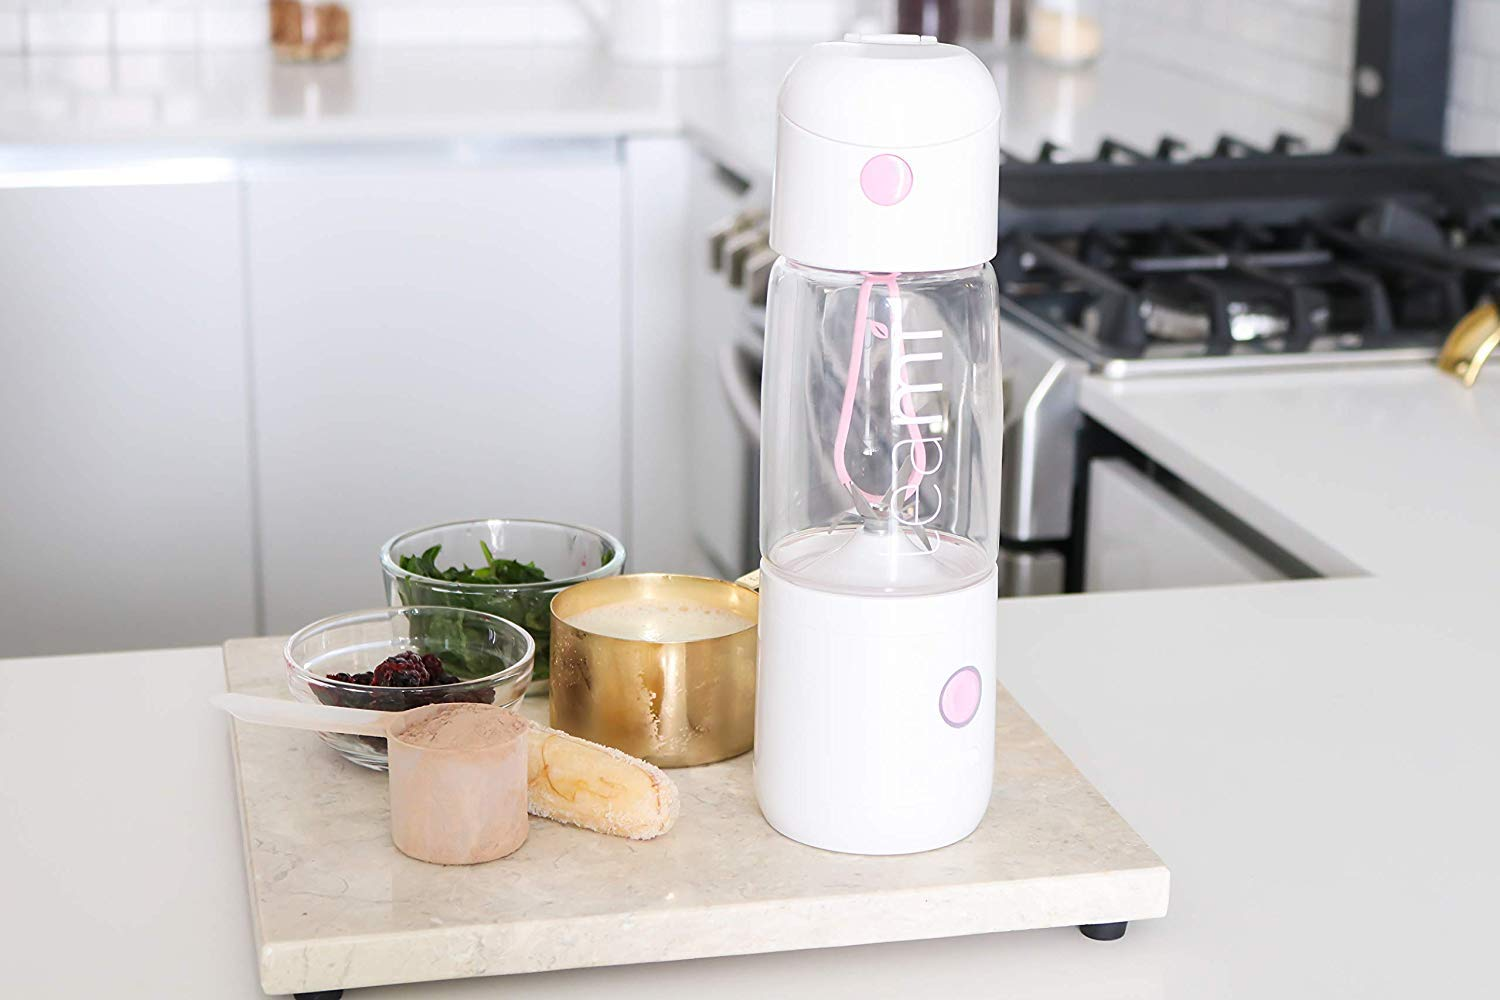 18.6oz Teami MIXit Portable Blender 2.0 Use at the Office or Gym 30 Seconds for Smoothies and Protein Shakes Personal Blender with 6 Powerful Blades USB Rechargeable GLASS Baby Pink